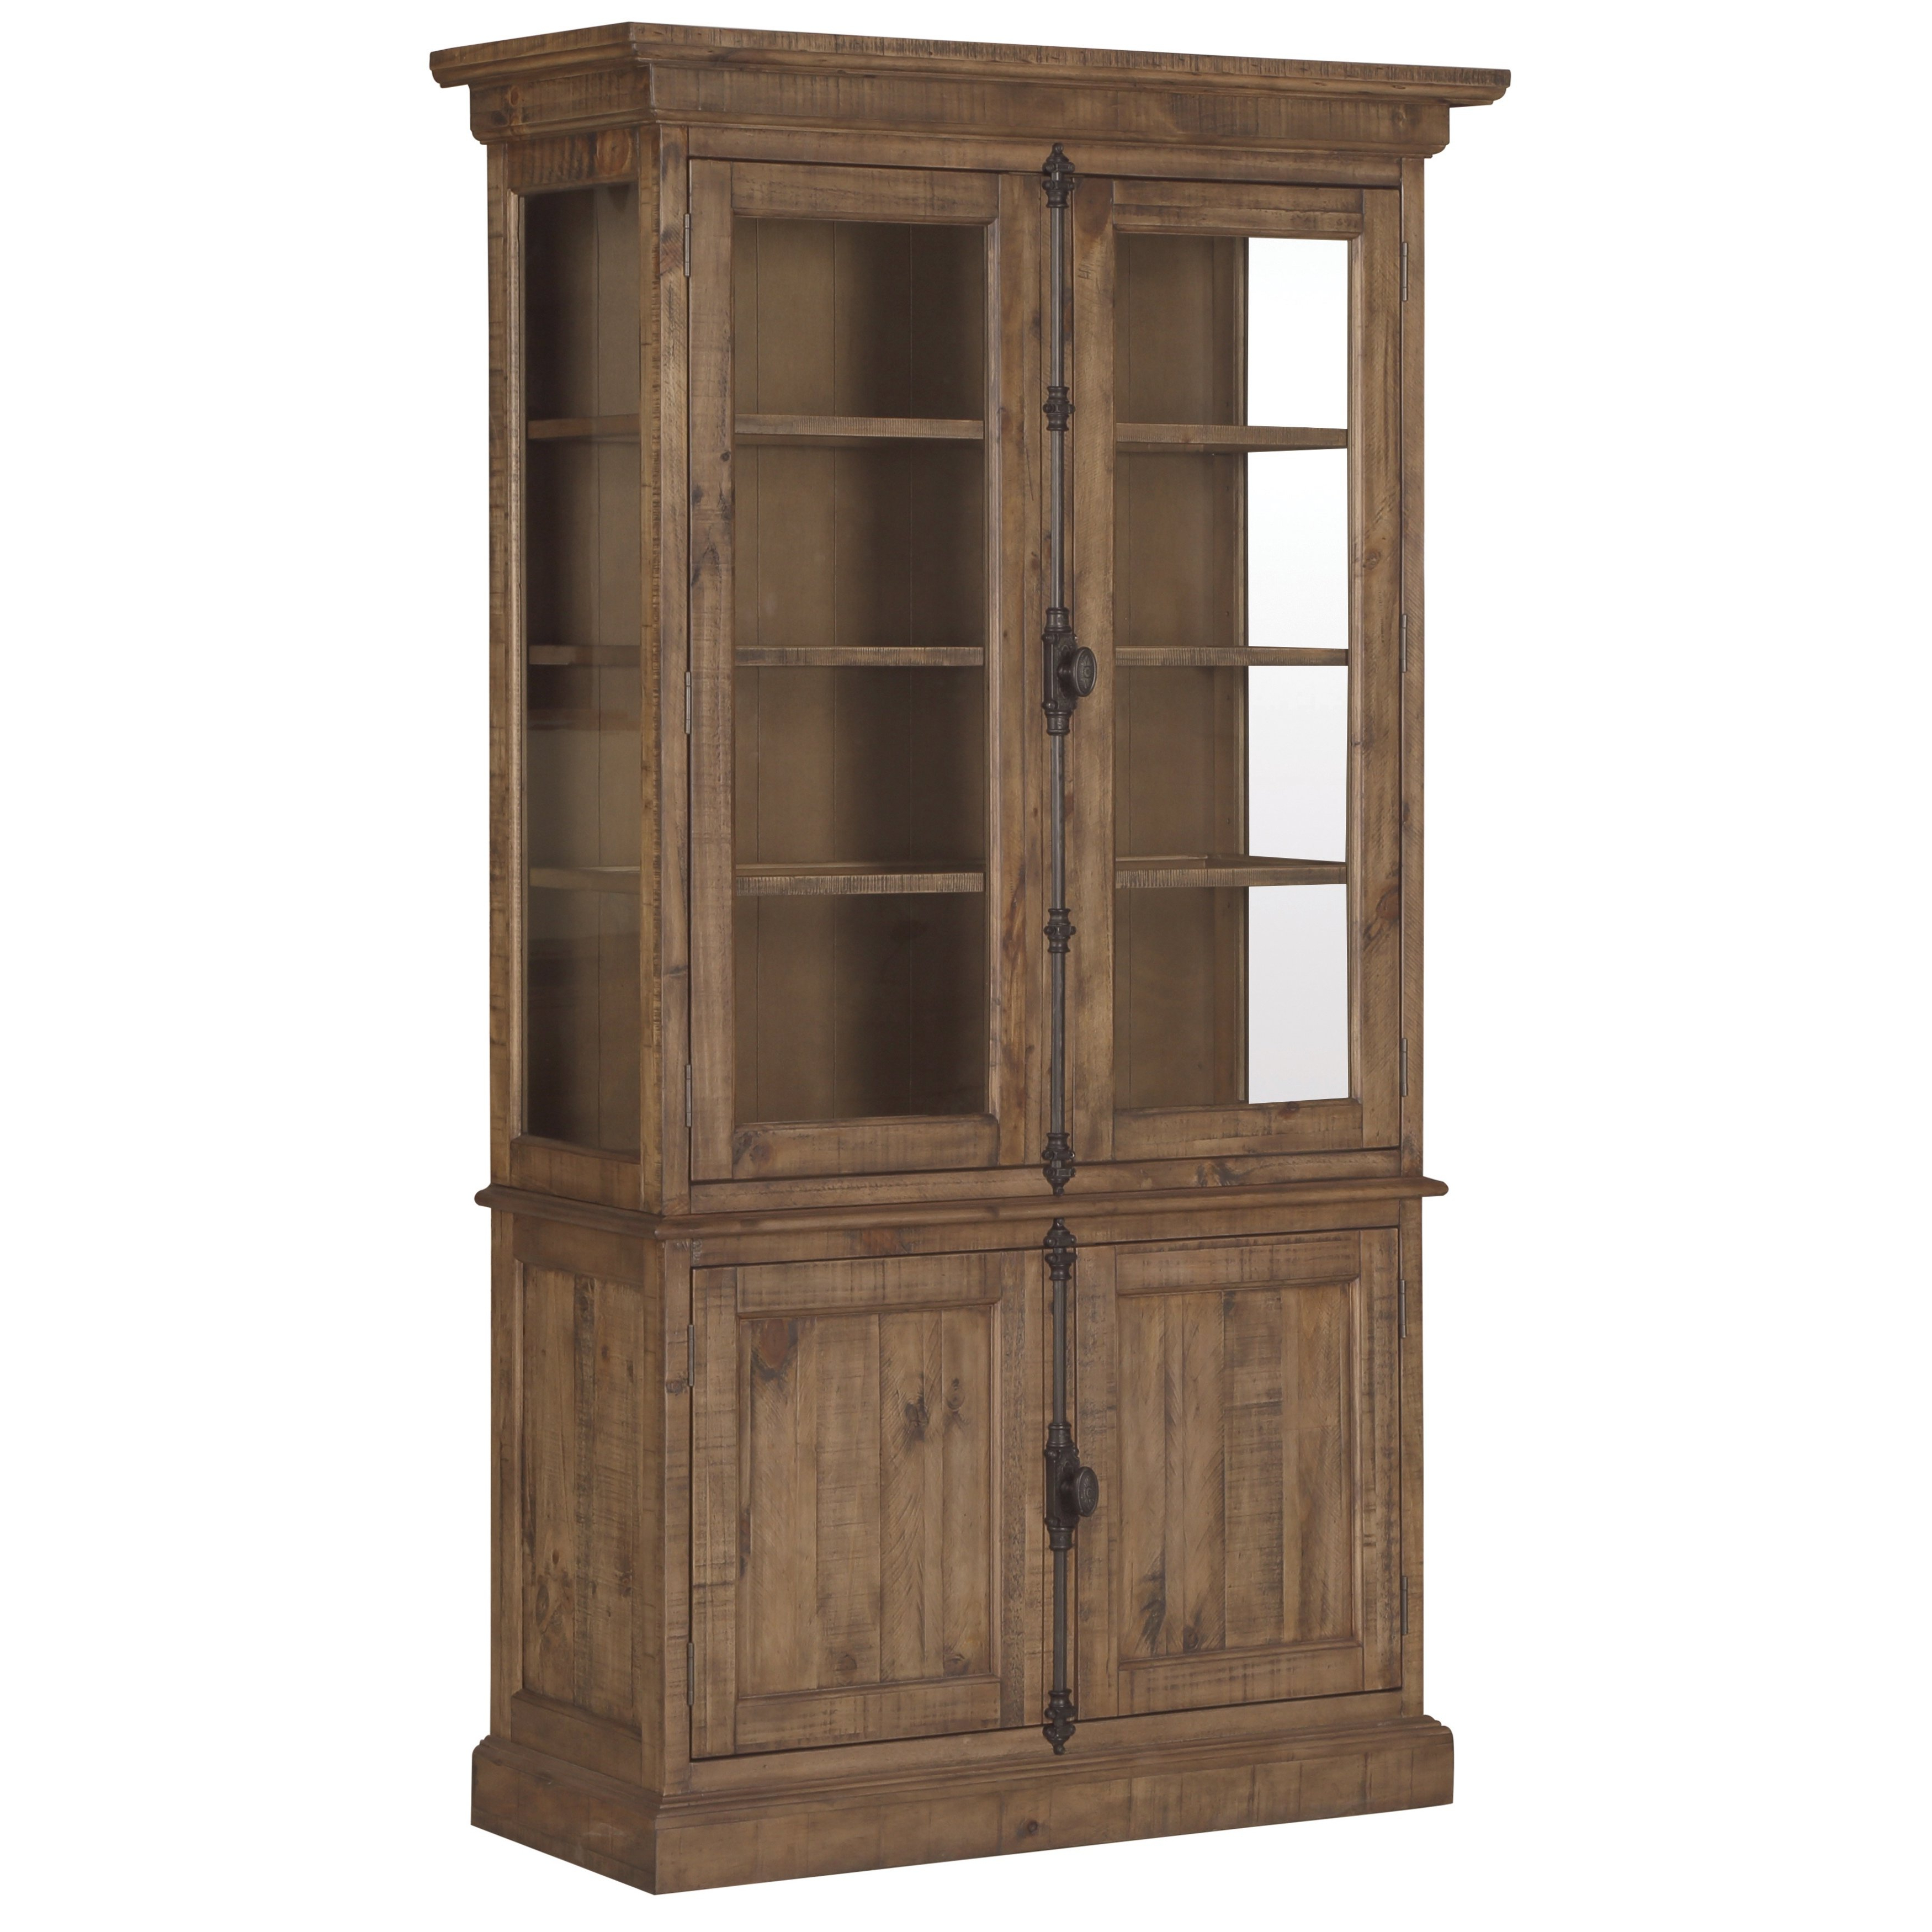 Filkins Lighted China Cabinet Intended For 2020 Filkins Sideboards (View 6 of 20)